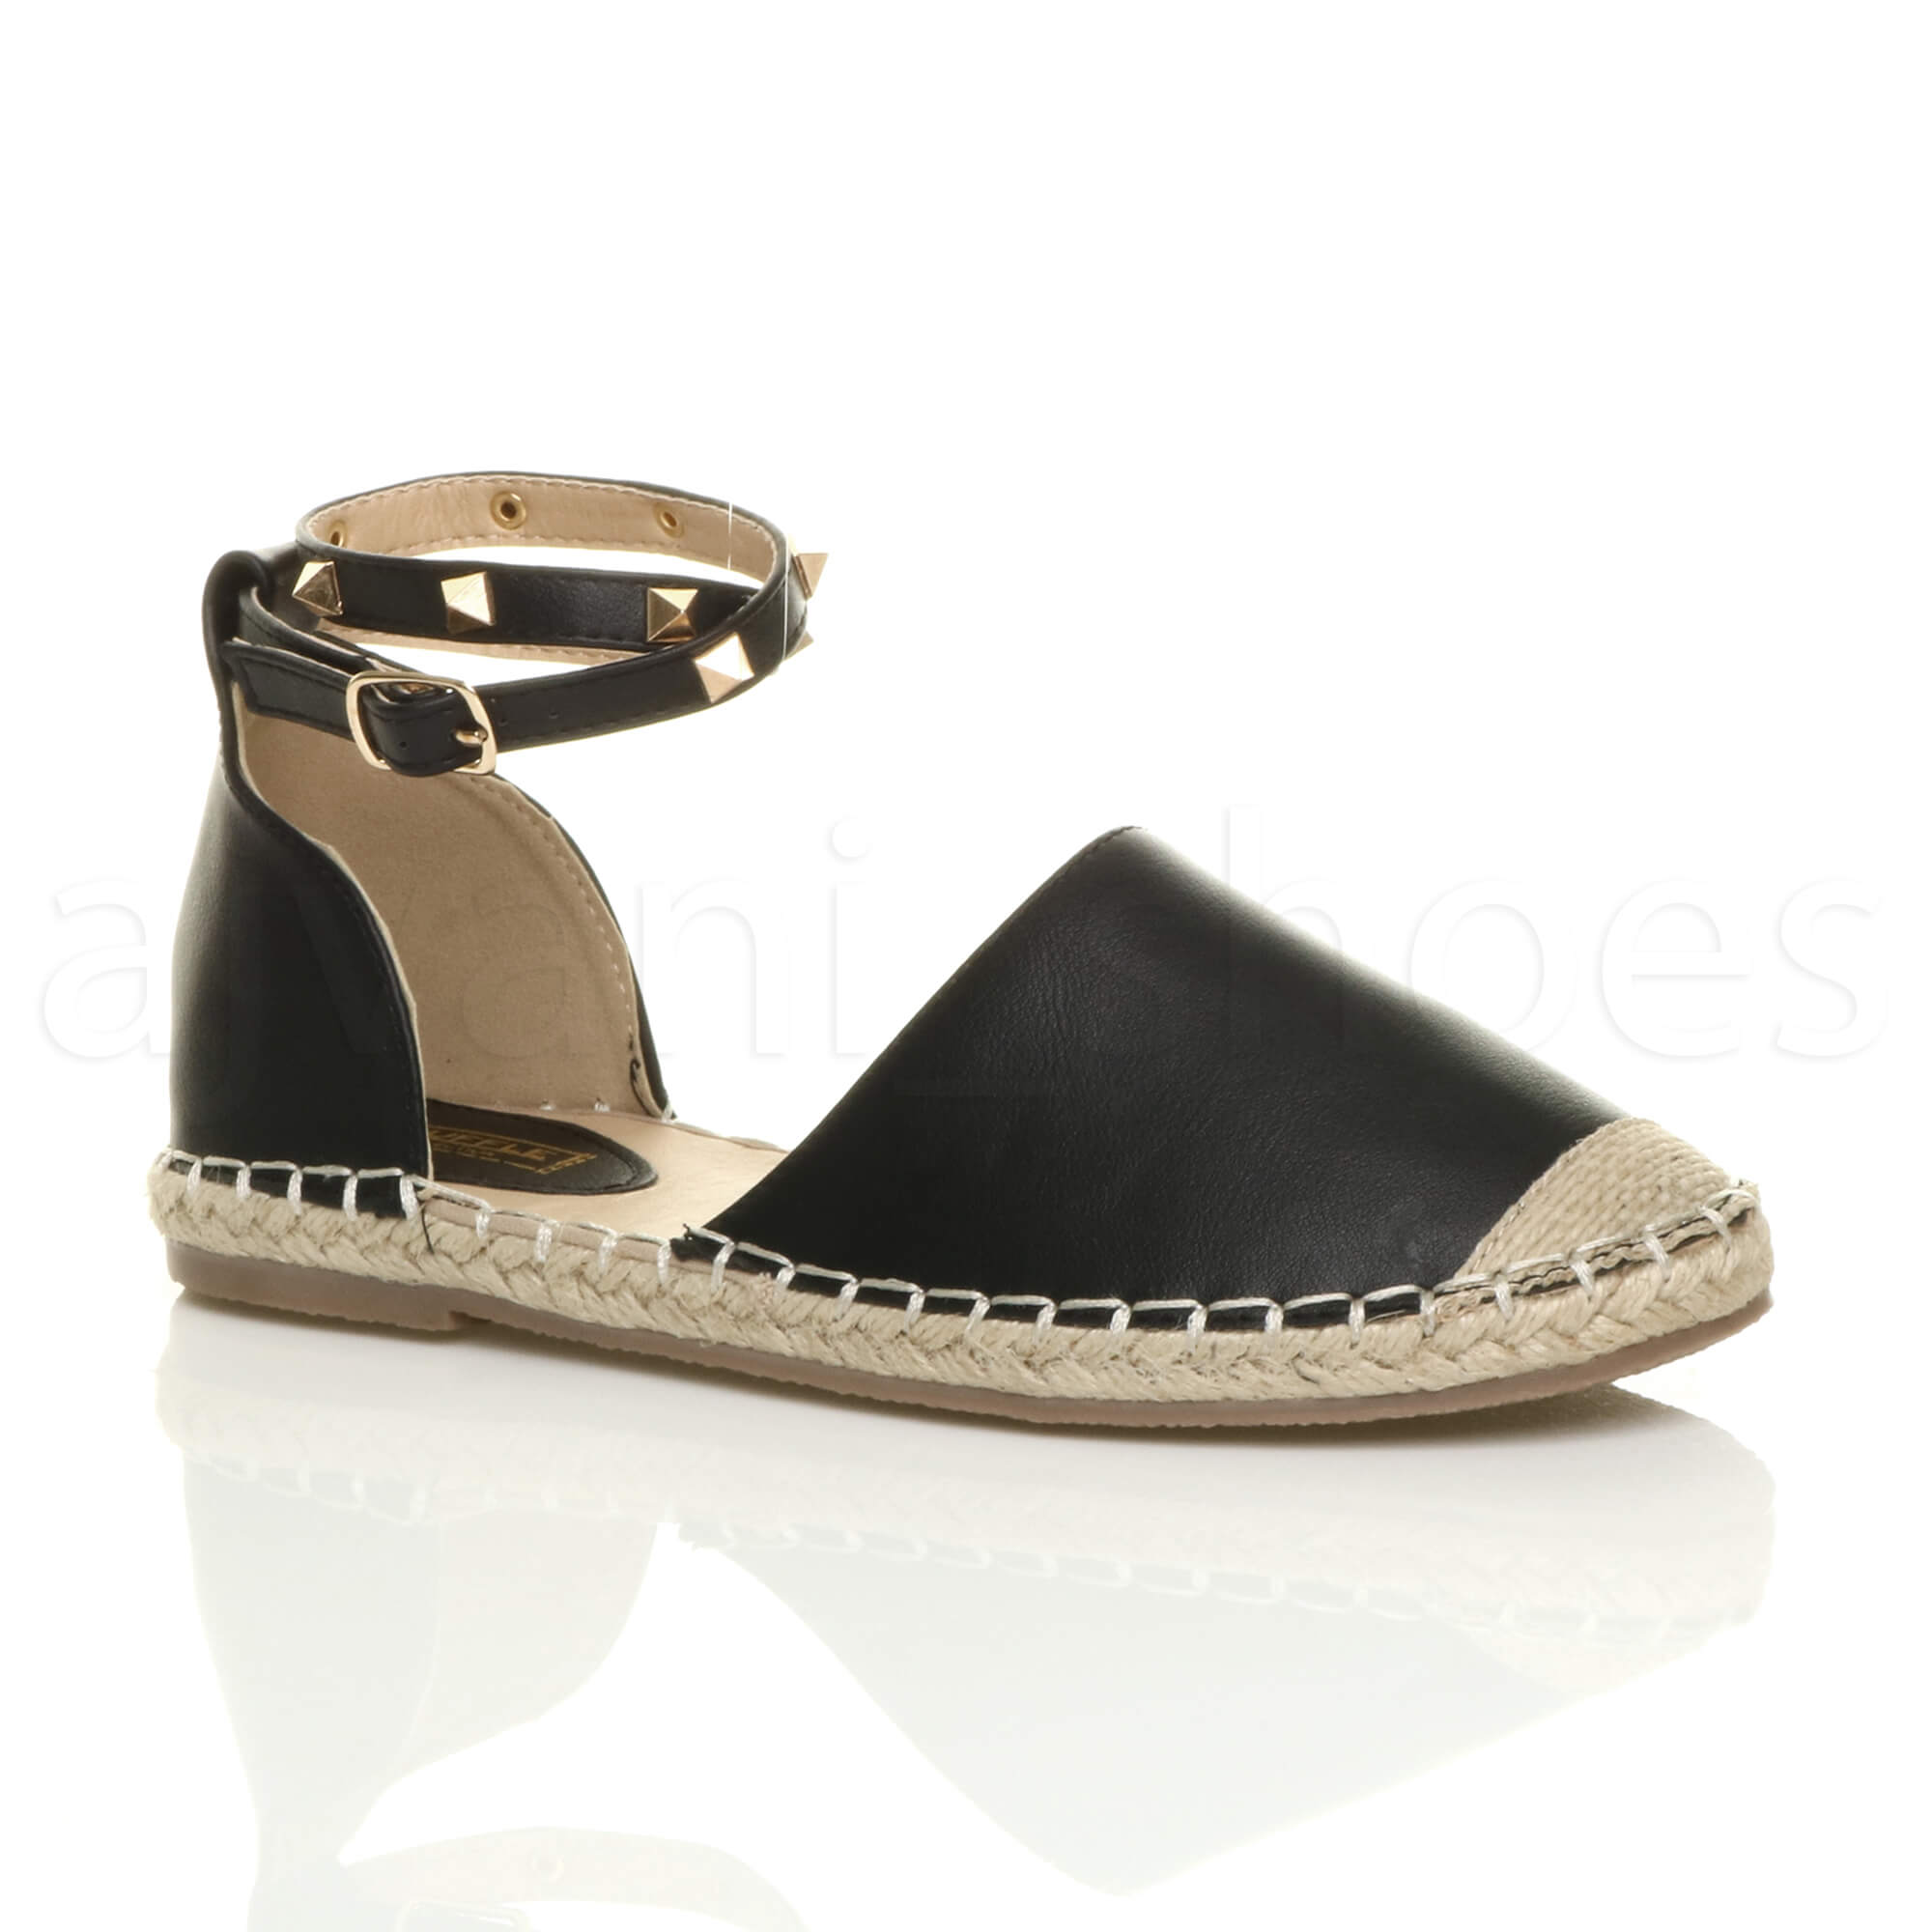 ddca685faa997 WOMENS LADIES FLAT STUDDED ANKLE STRAP ESPADRILLES SUMMER SHOES SANDALS SIZE